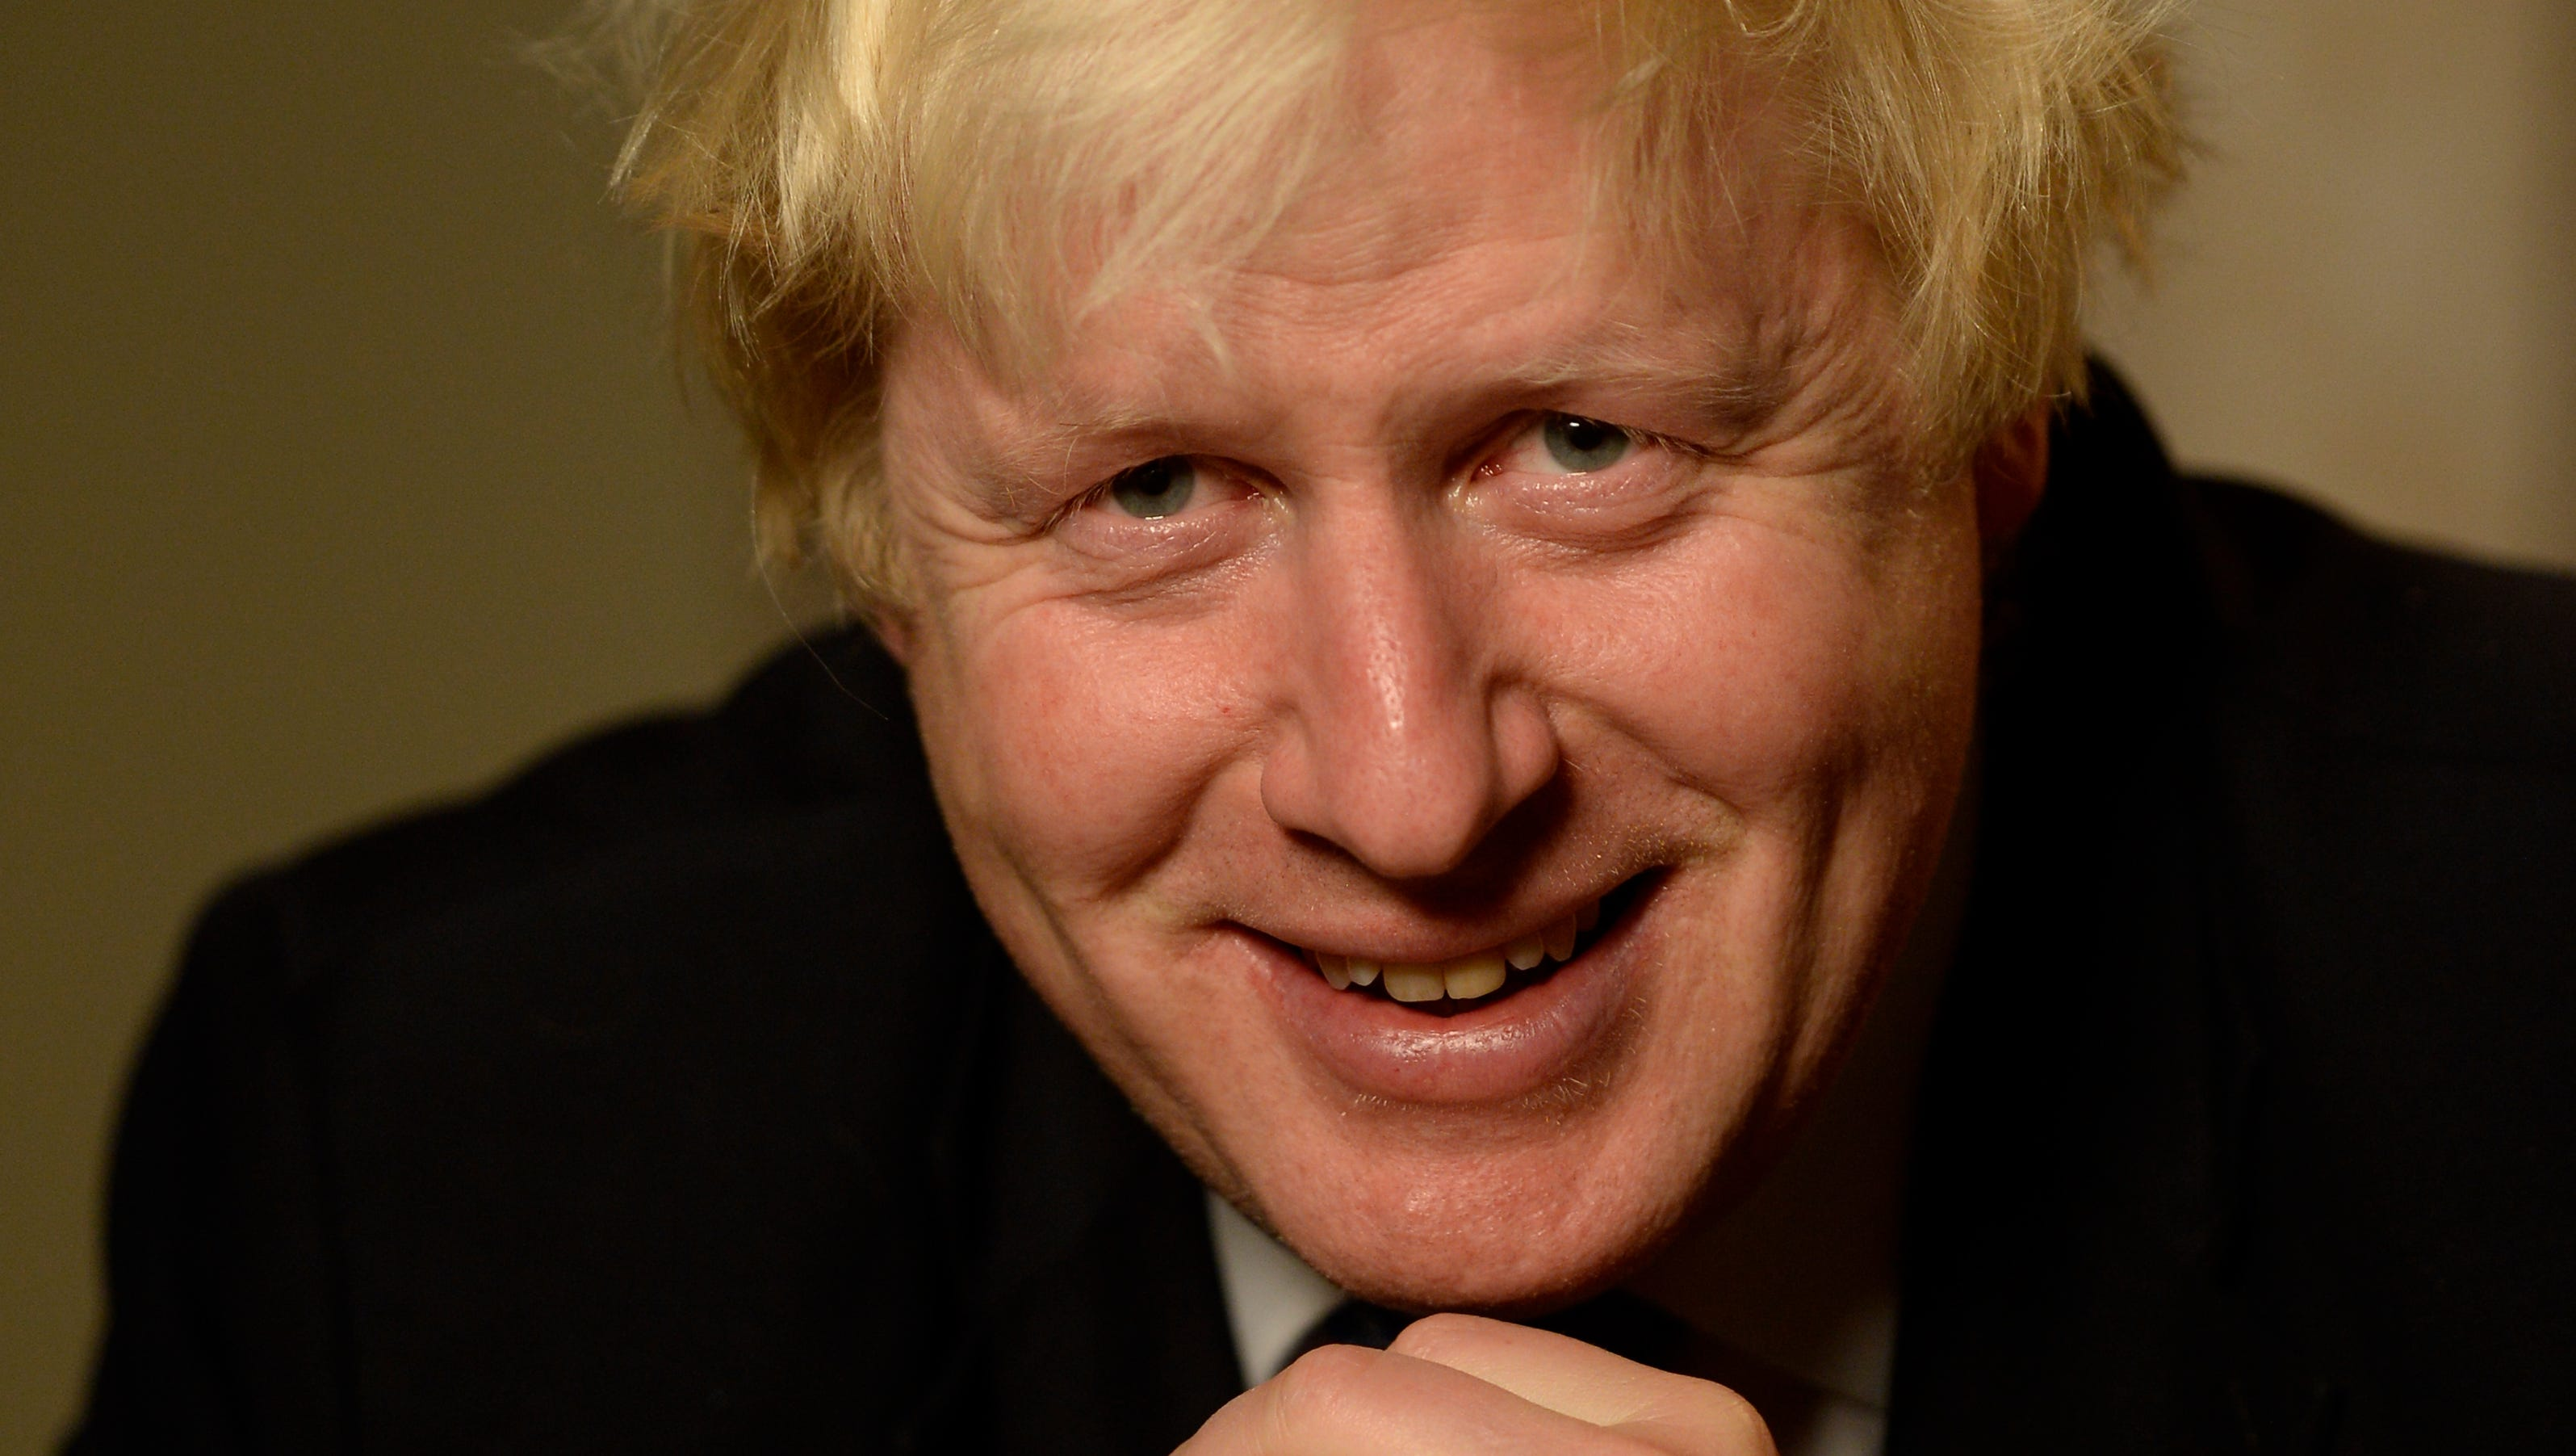 London mayor: On prime ministers and prospects